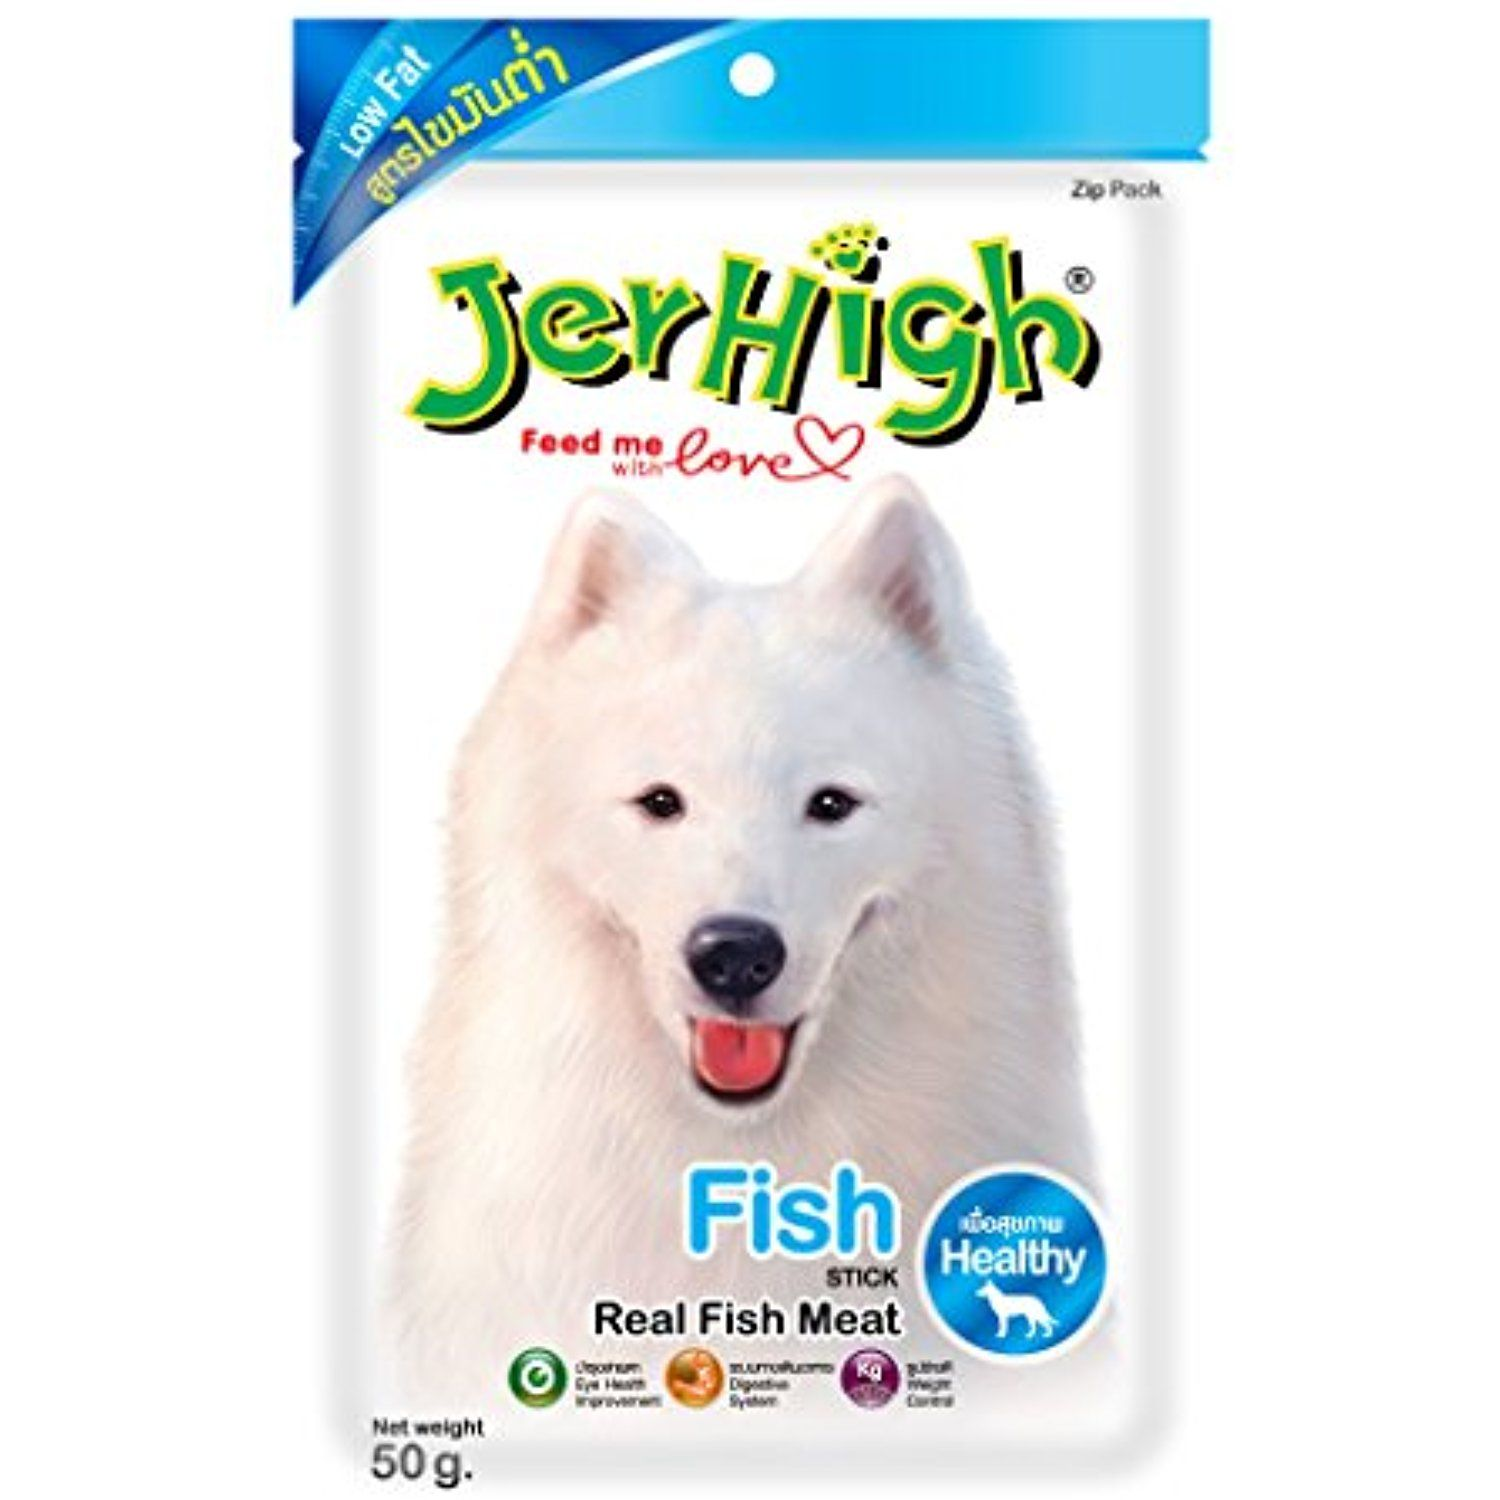 Jerhigh fish stick low fat you can learn more by visiting the